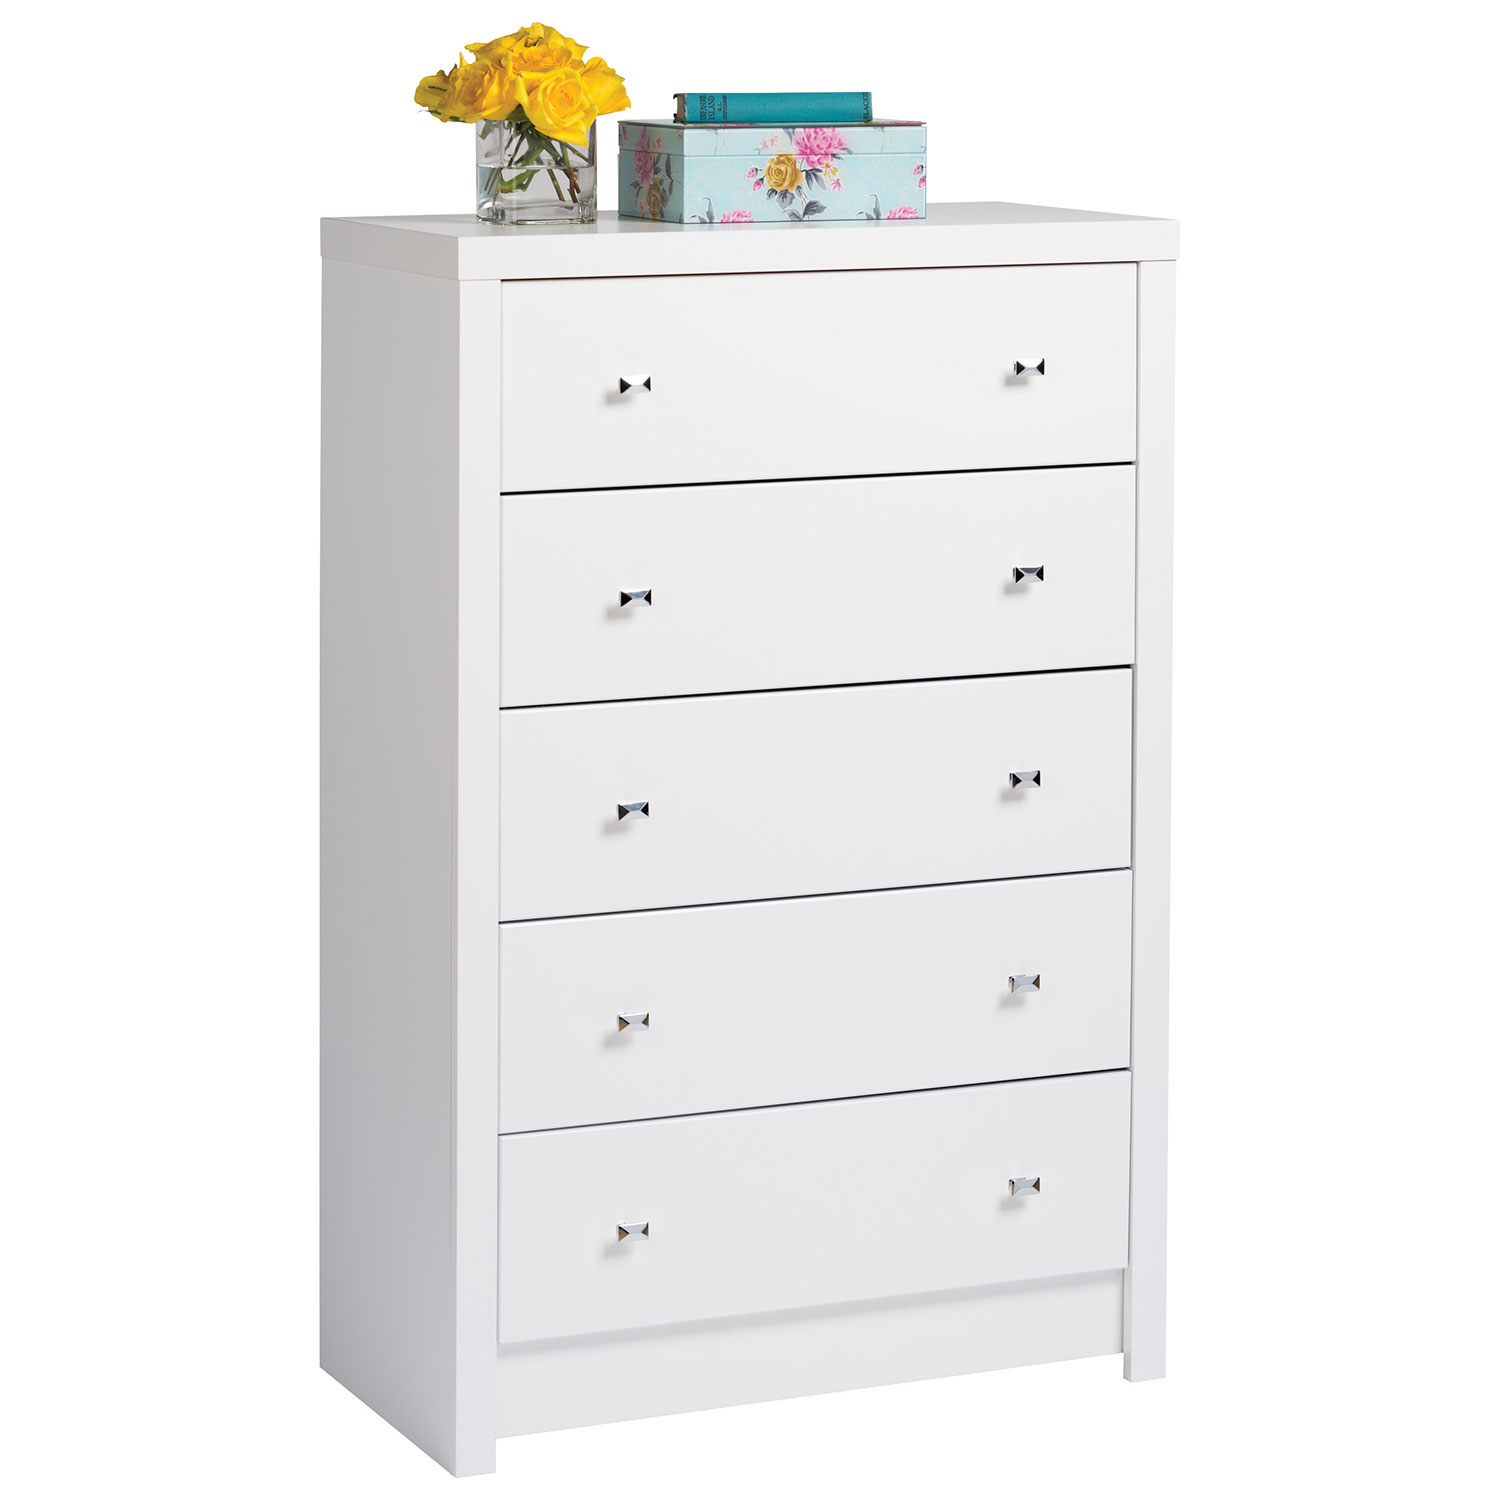 calla modern drawer chest  white  dressers  chests  best buy  - calla modern drawer chest  white  dressers  chests  best buy canada